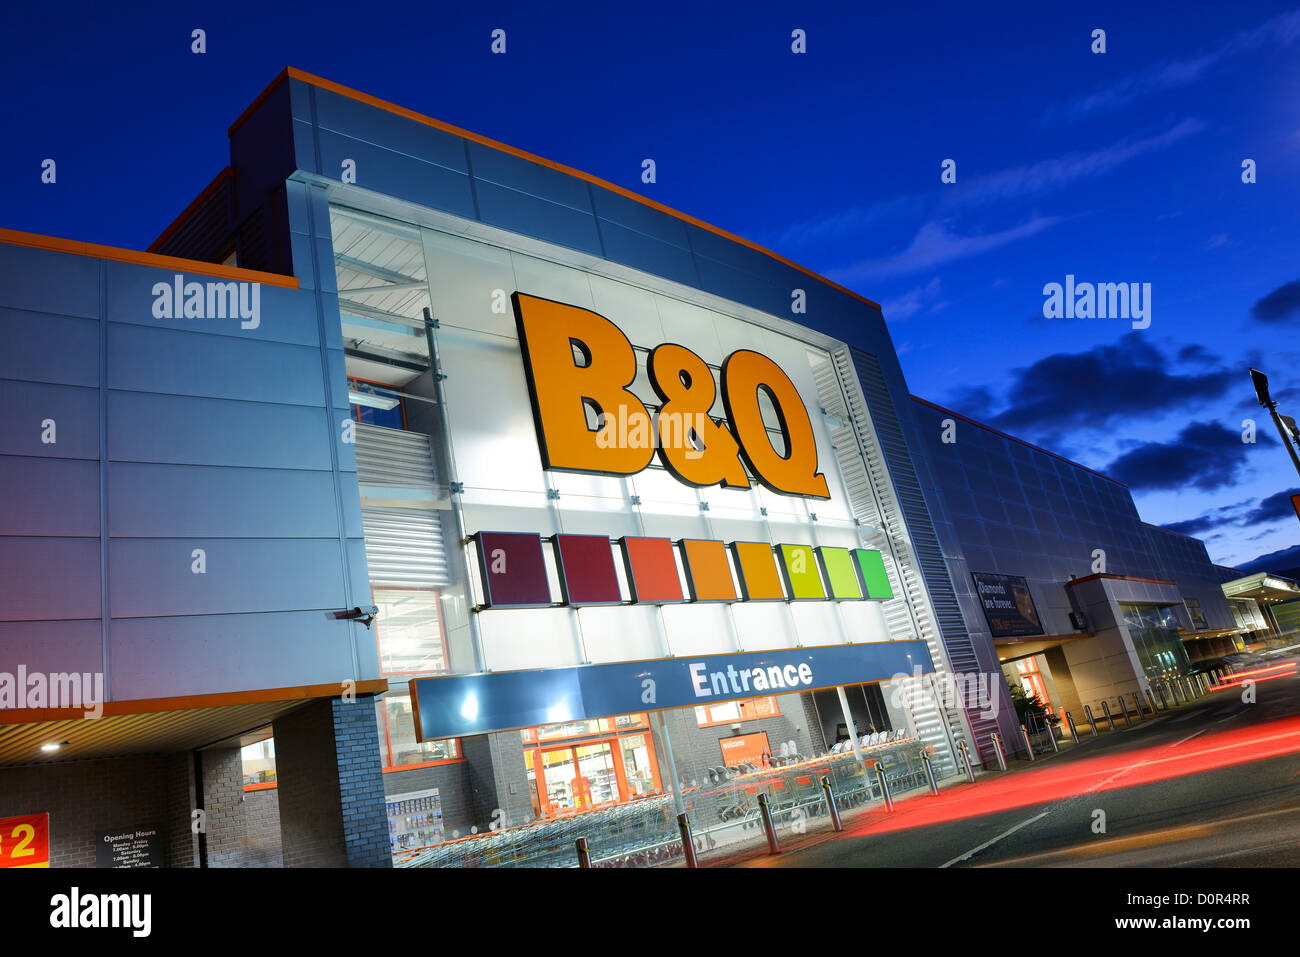 B & Q Warehouse entrance sign - Stock Image